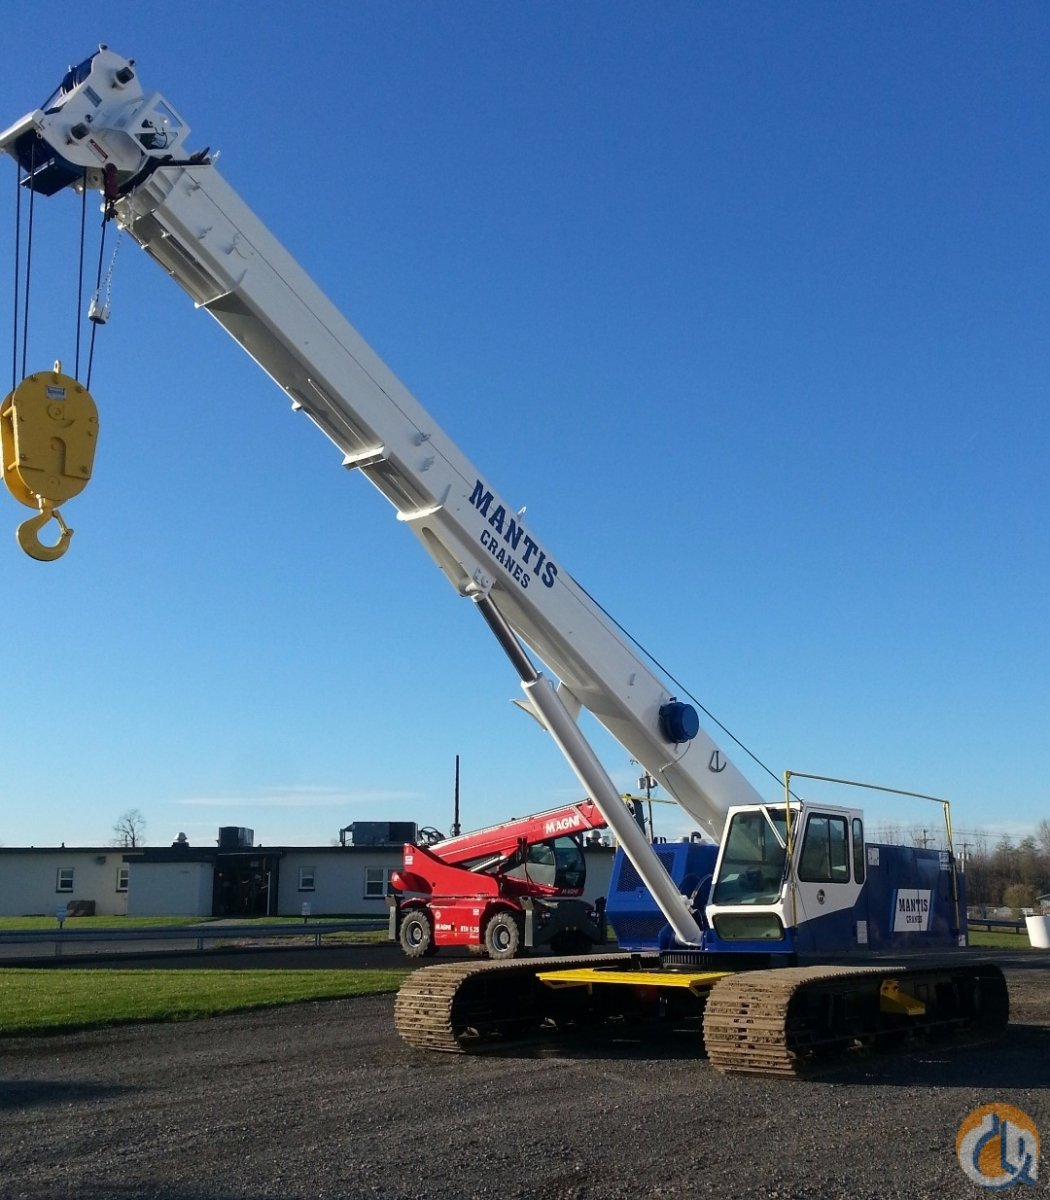 Mantis 6010 Crawler Telescopic Boom Cranes Crane for Sale Mantis 6010LP in Syracuse  New York  United States 213458 CraneNetwork